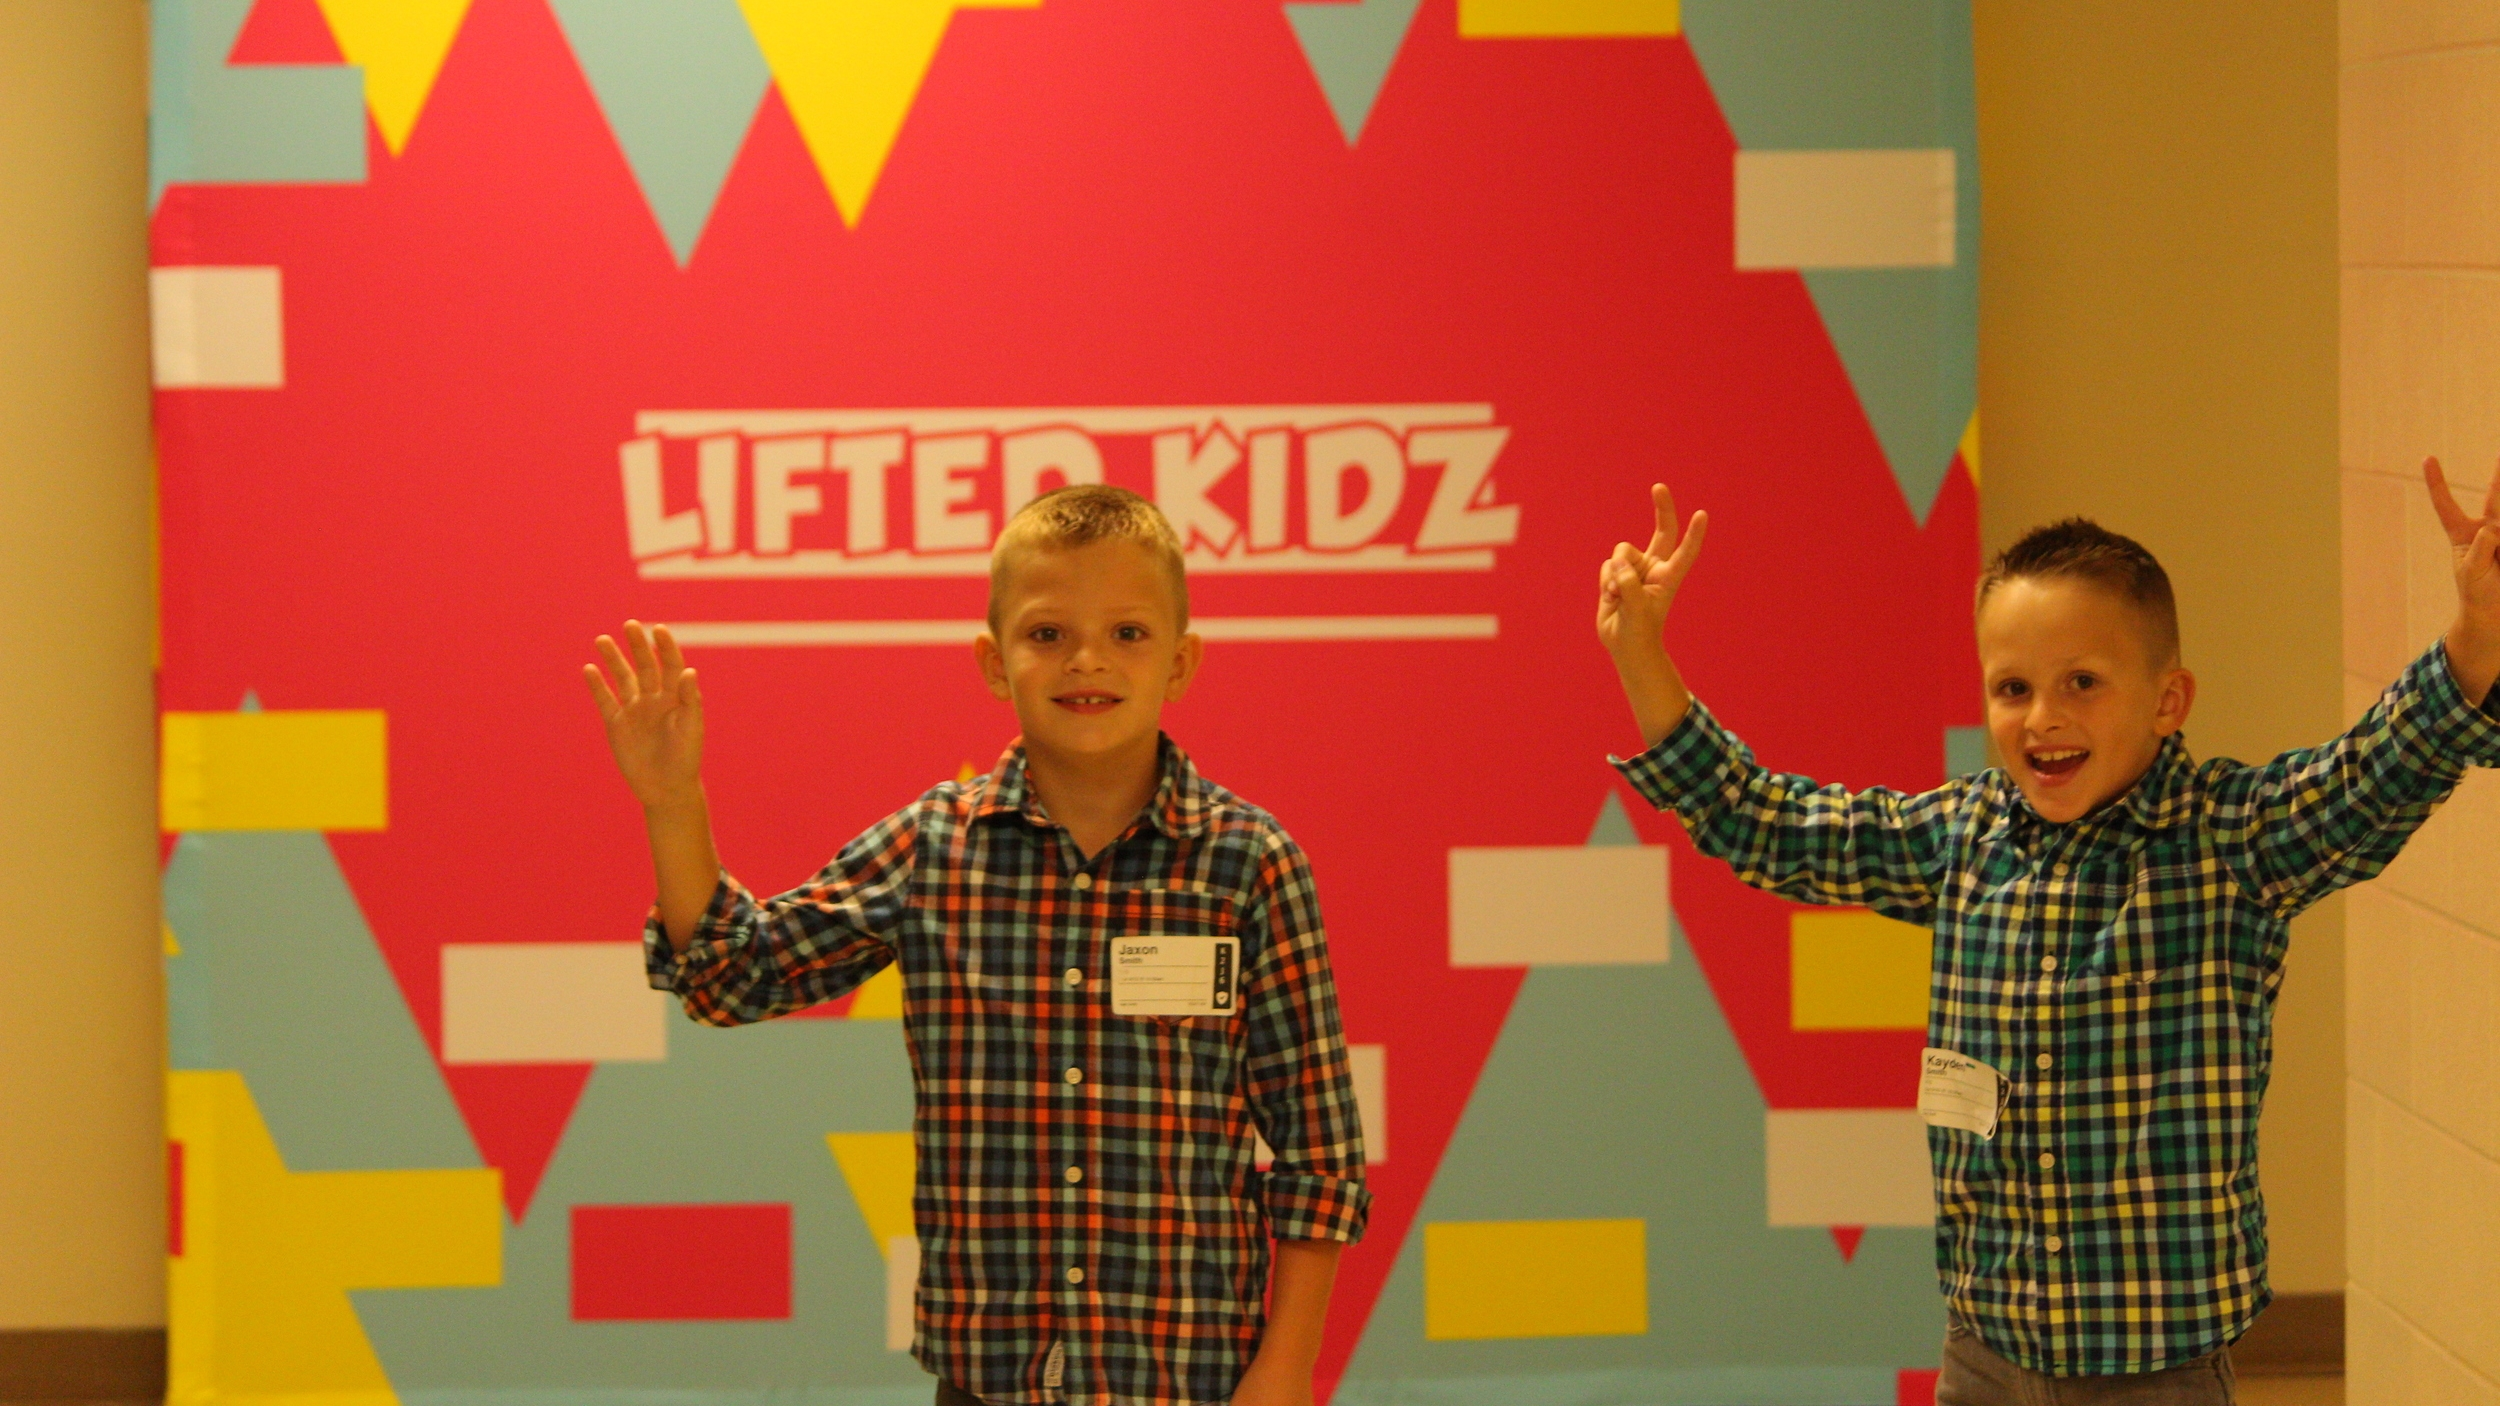 WE INVEST IN THE NEXT GENERATION    LIFTED KIDZ IS FUN, SAFE, AND LIFE CHANGING